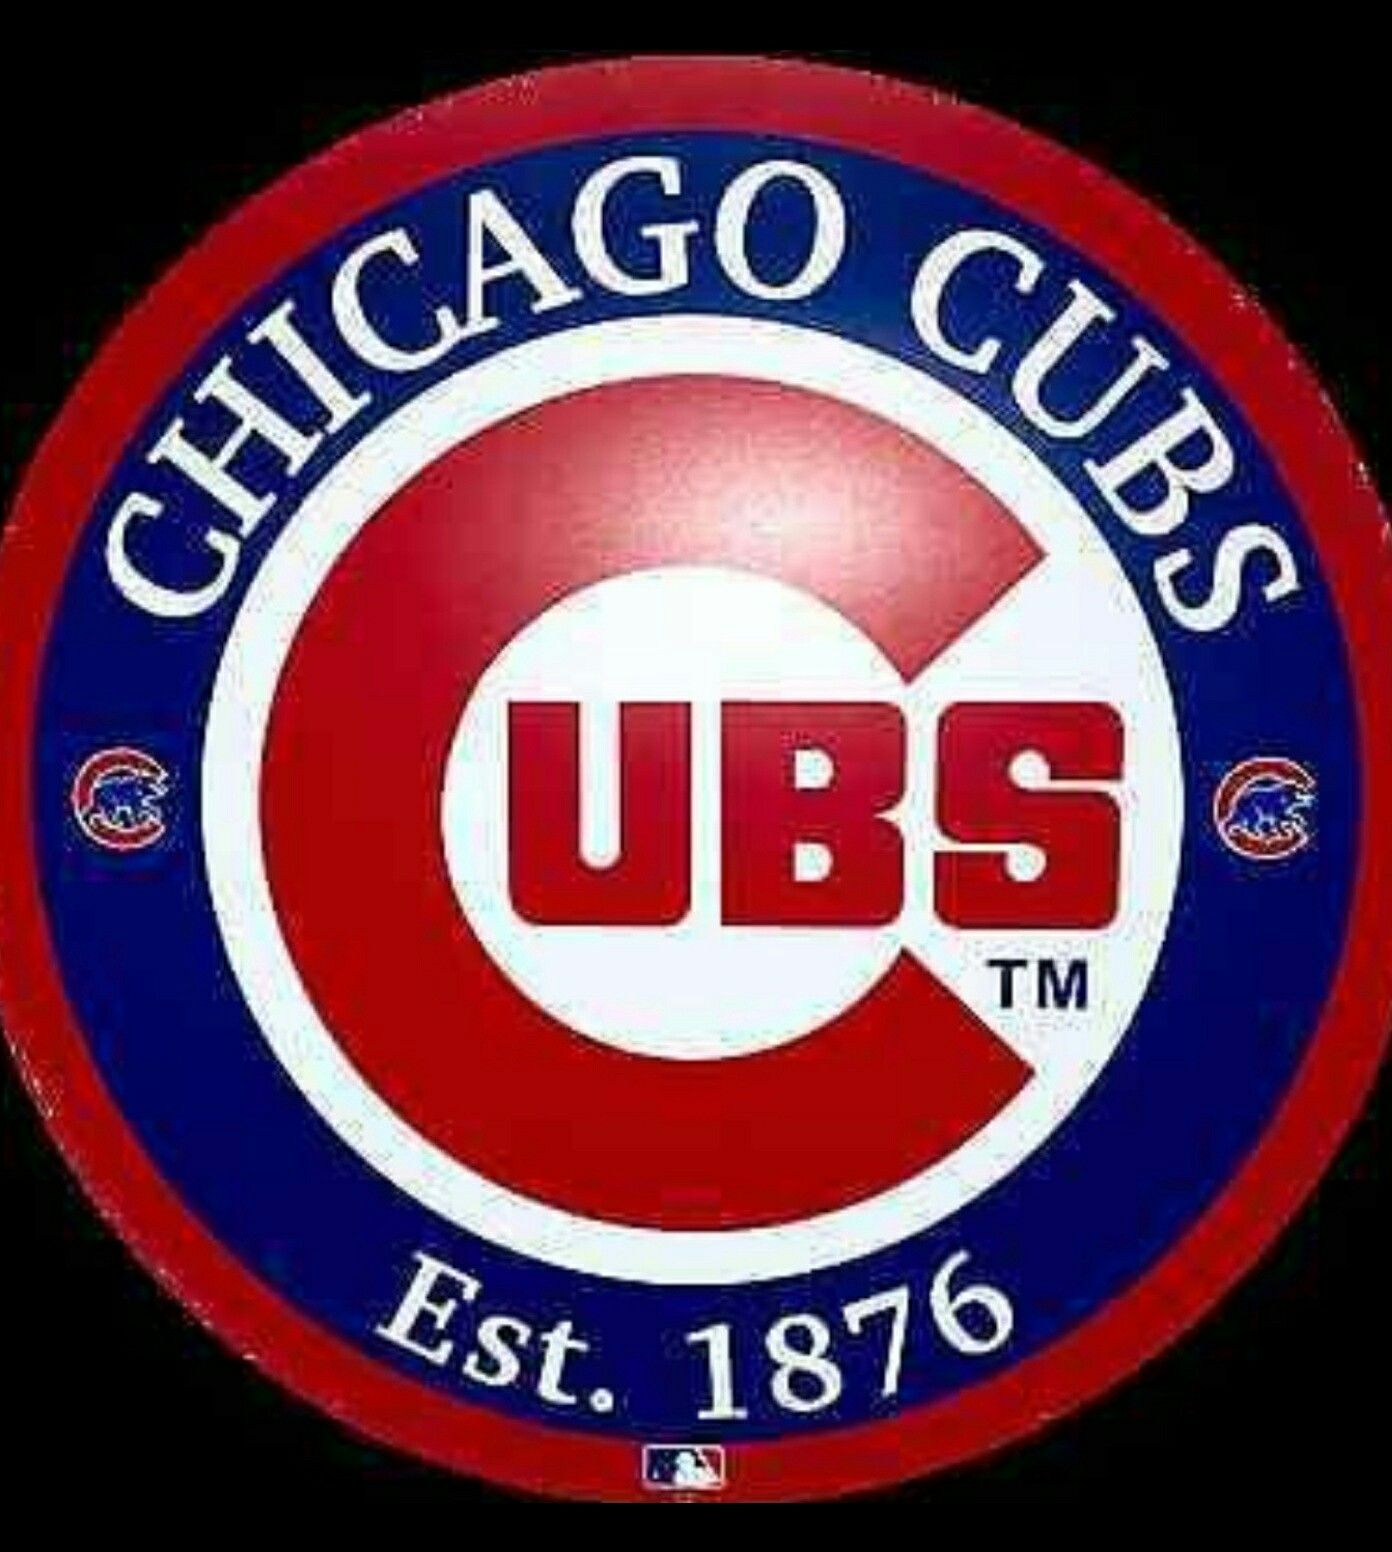 Pin By Heidi Lacy On Chicago Cubs With Images Chicago Cubs Chicago Cubs World Series Chicago Cubs Pictures